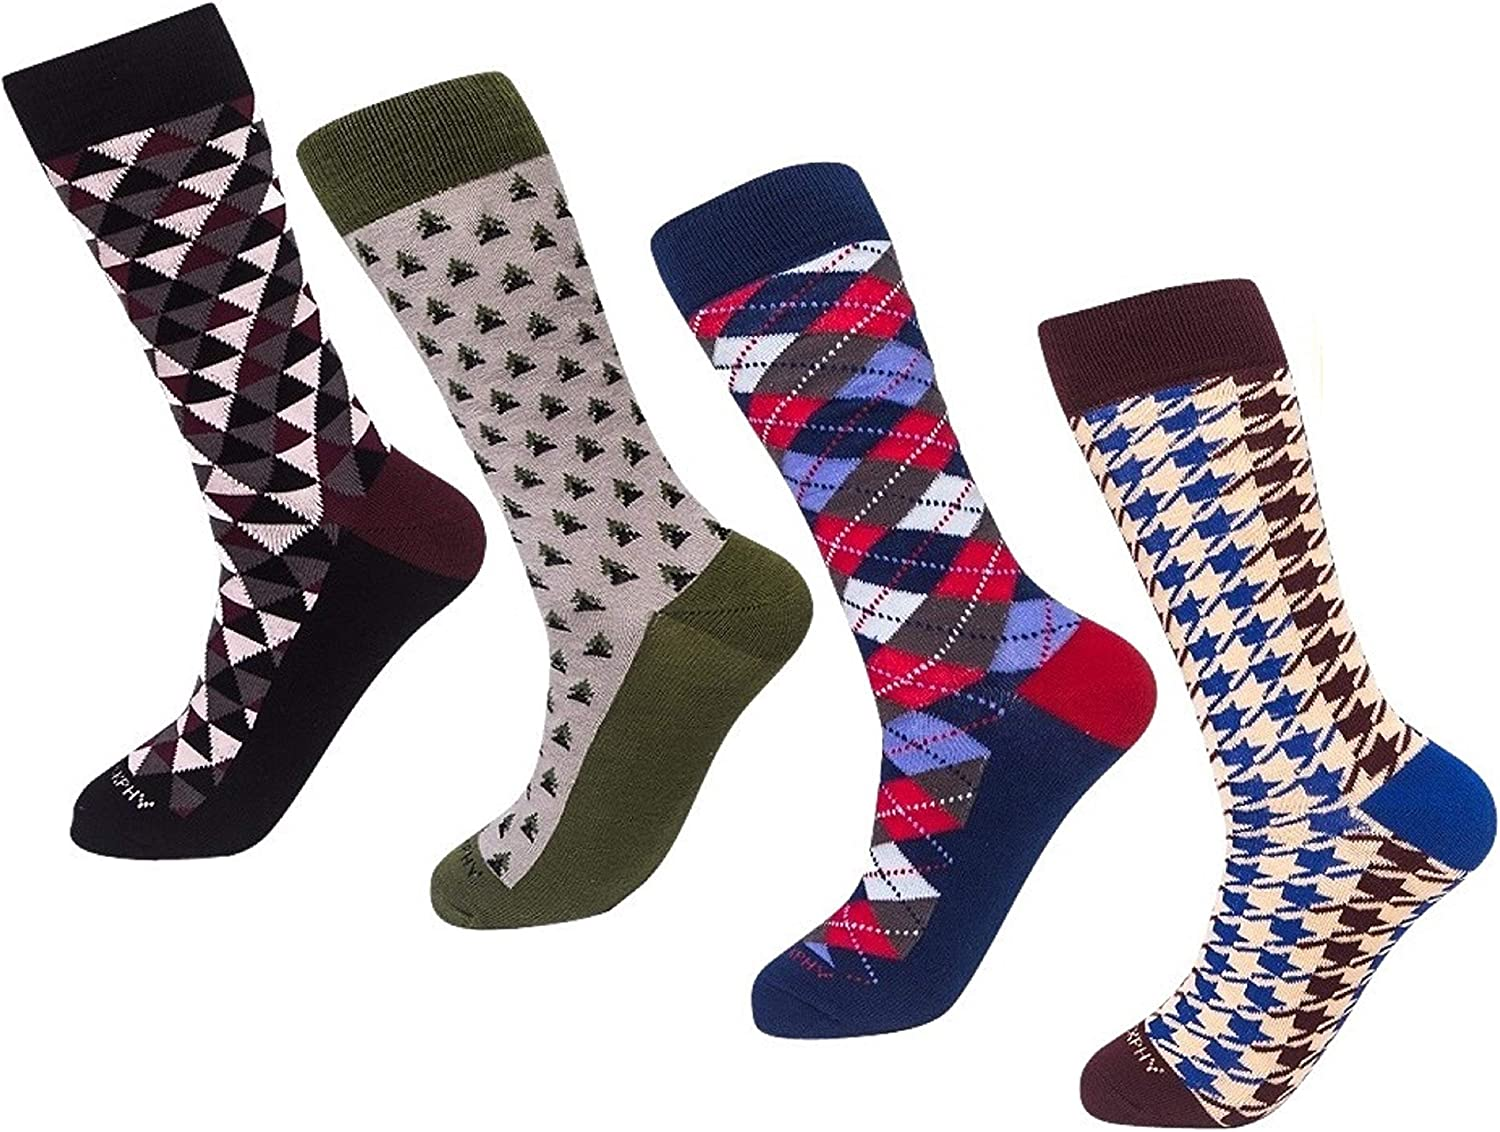 Bargain 4 Pack Cool Socks Colorful Large special price !! PHILOSOCKPHY's - Crazy